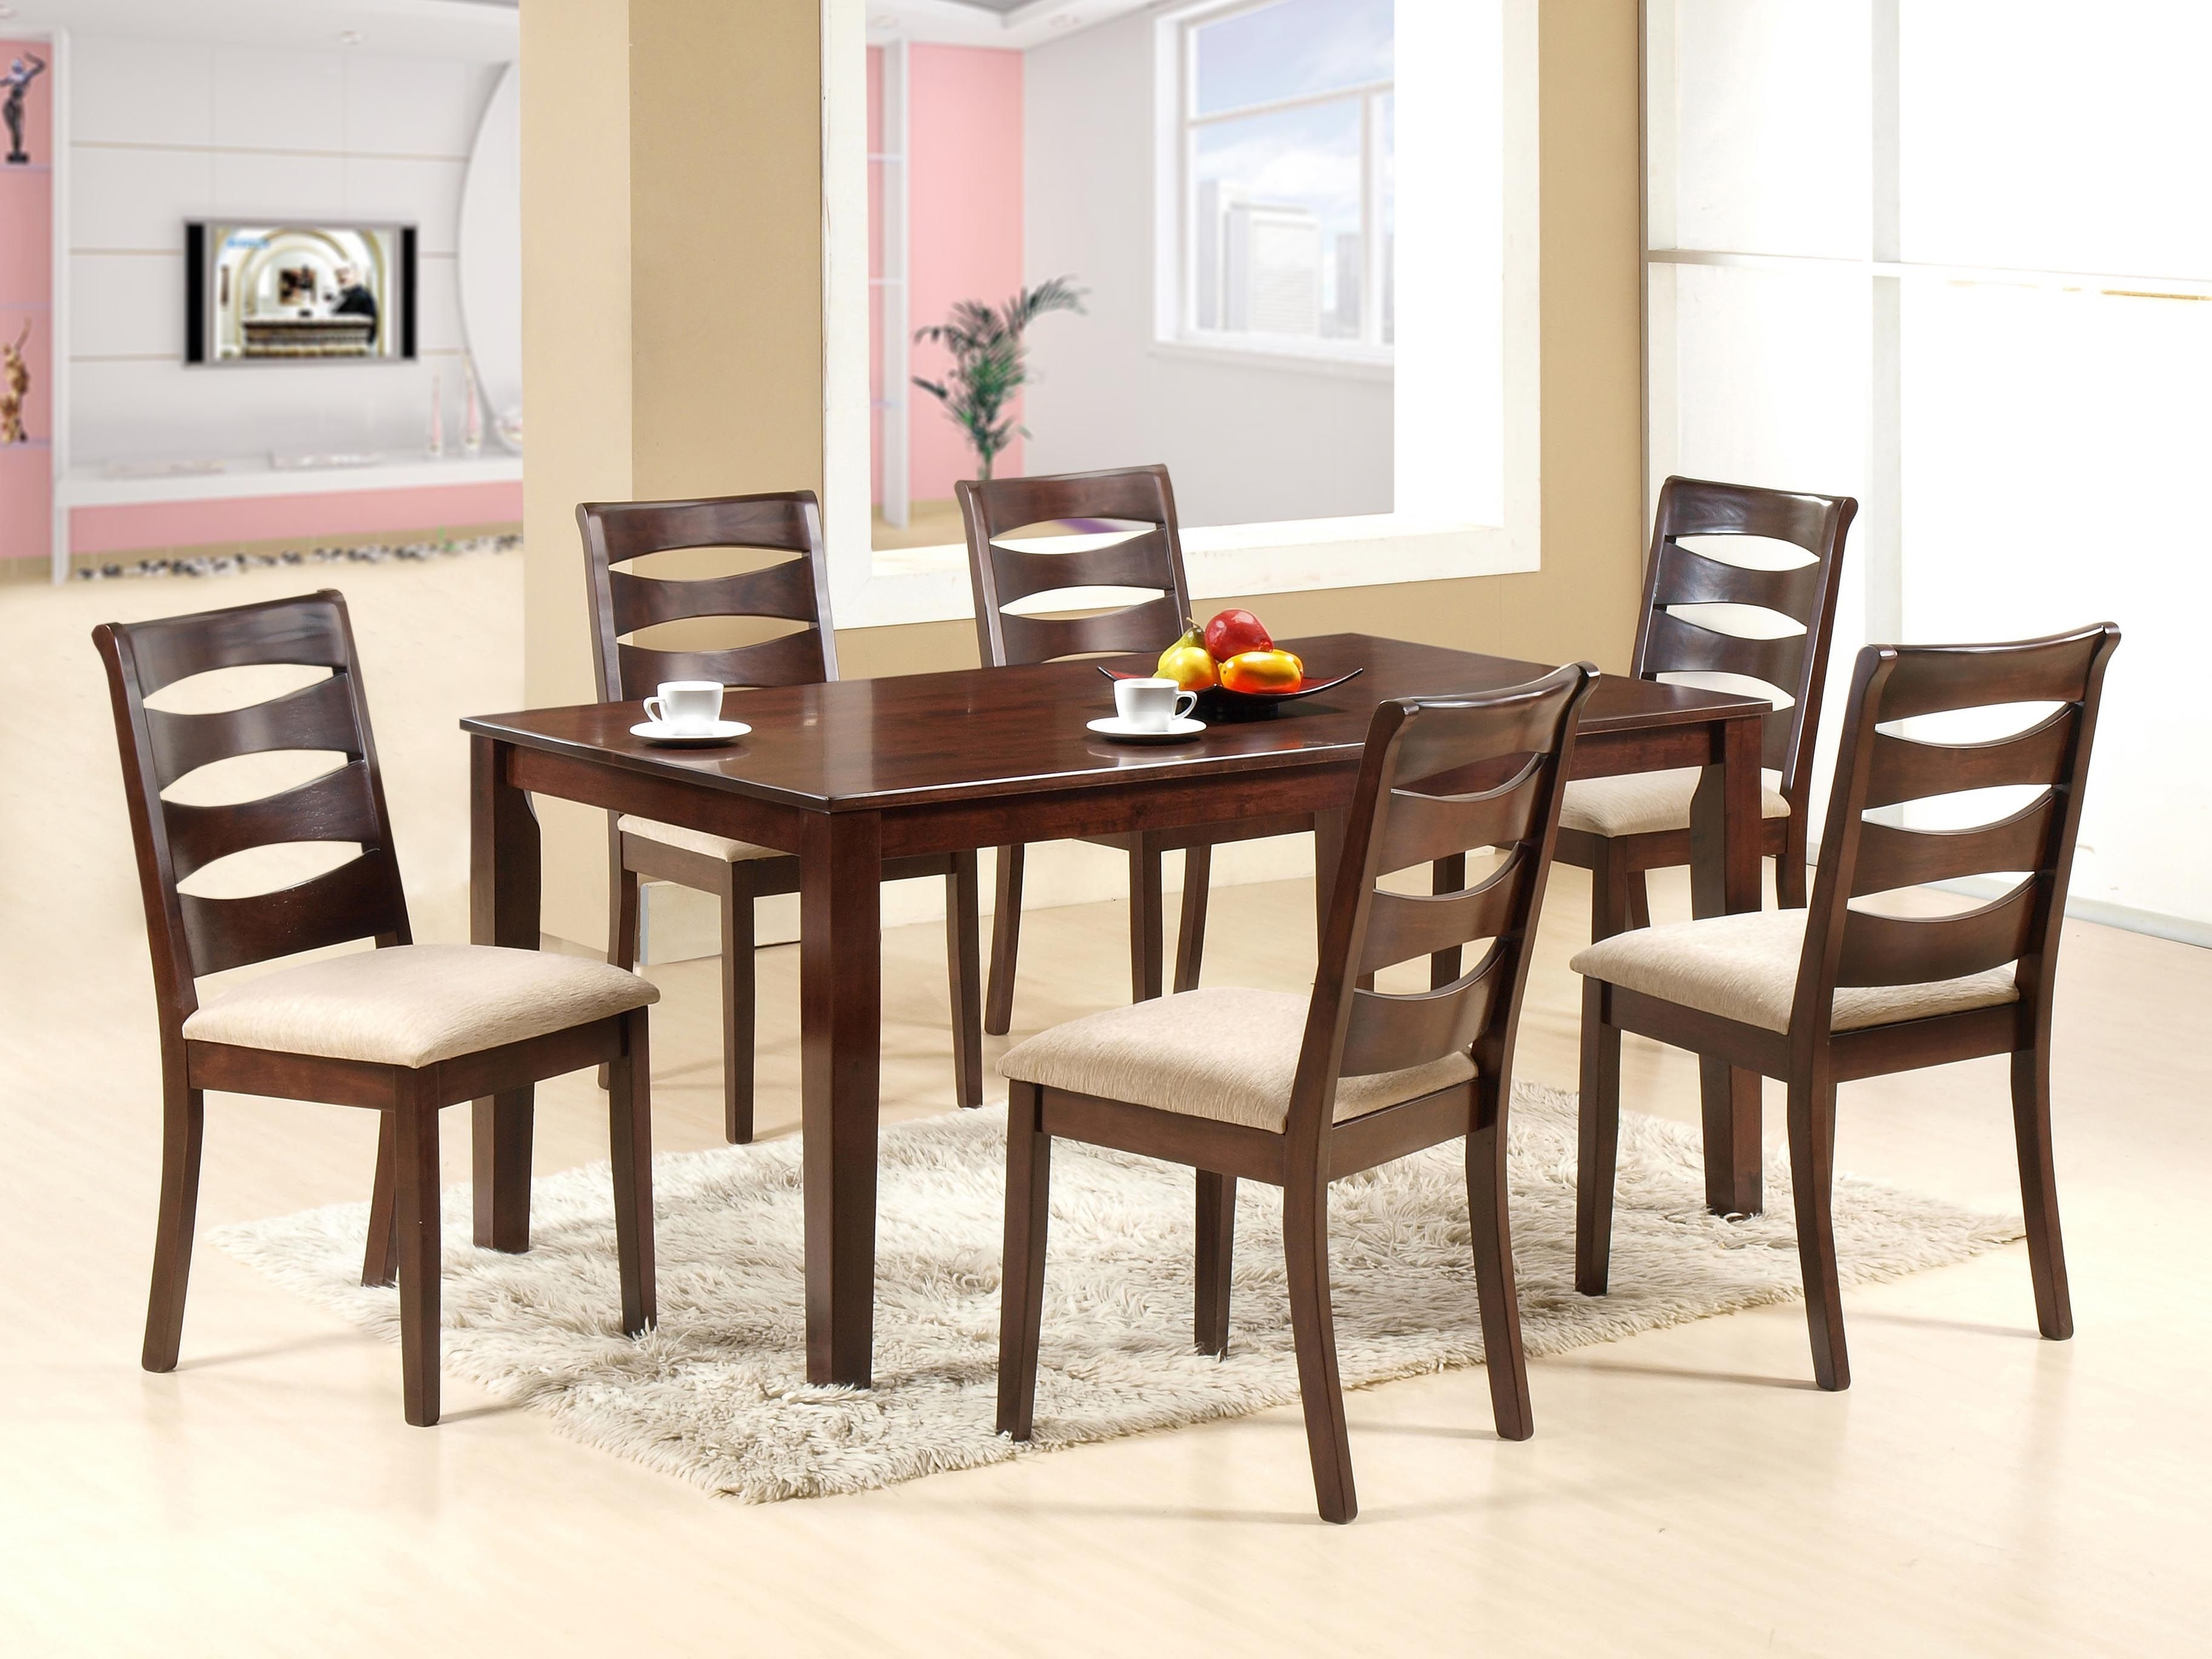 Pinthe Furniture Republic On Dining Sets | Pinterest | Dining For Newest Candice Ii 6 Piece Extension Rectangle Dining Sets (Image 12 of 20)